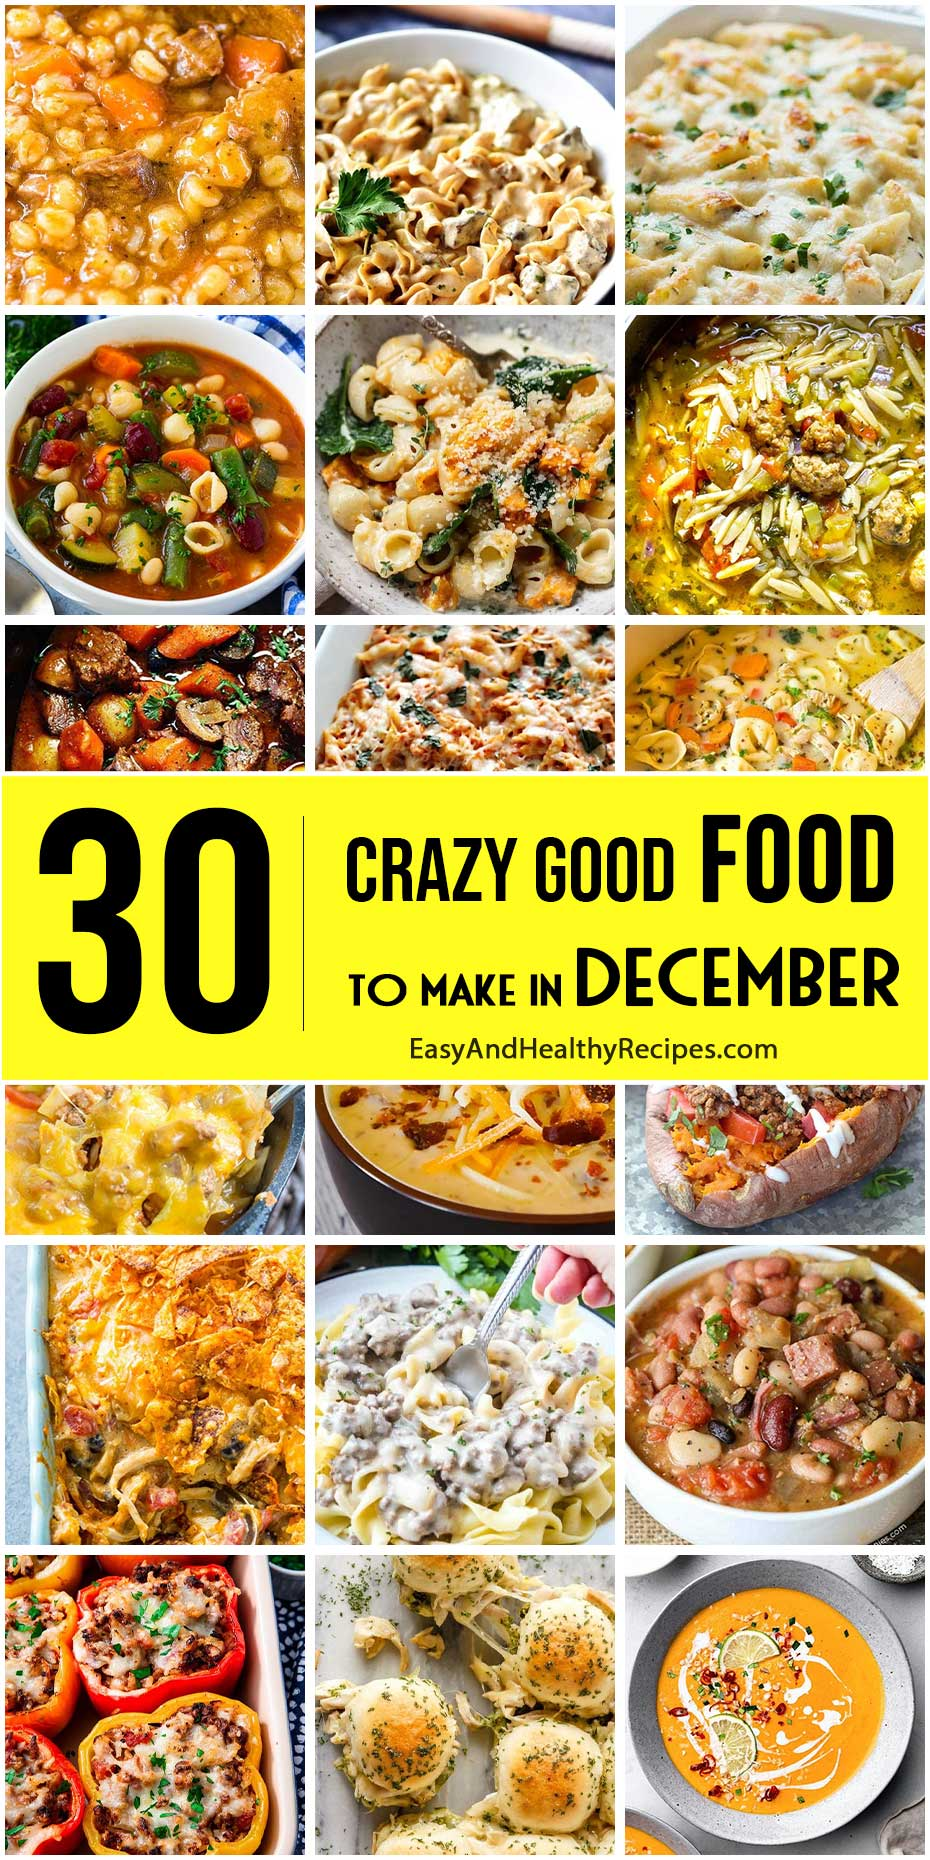 Here Are Crazy Good Foods To Make in December